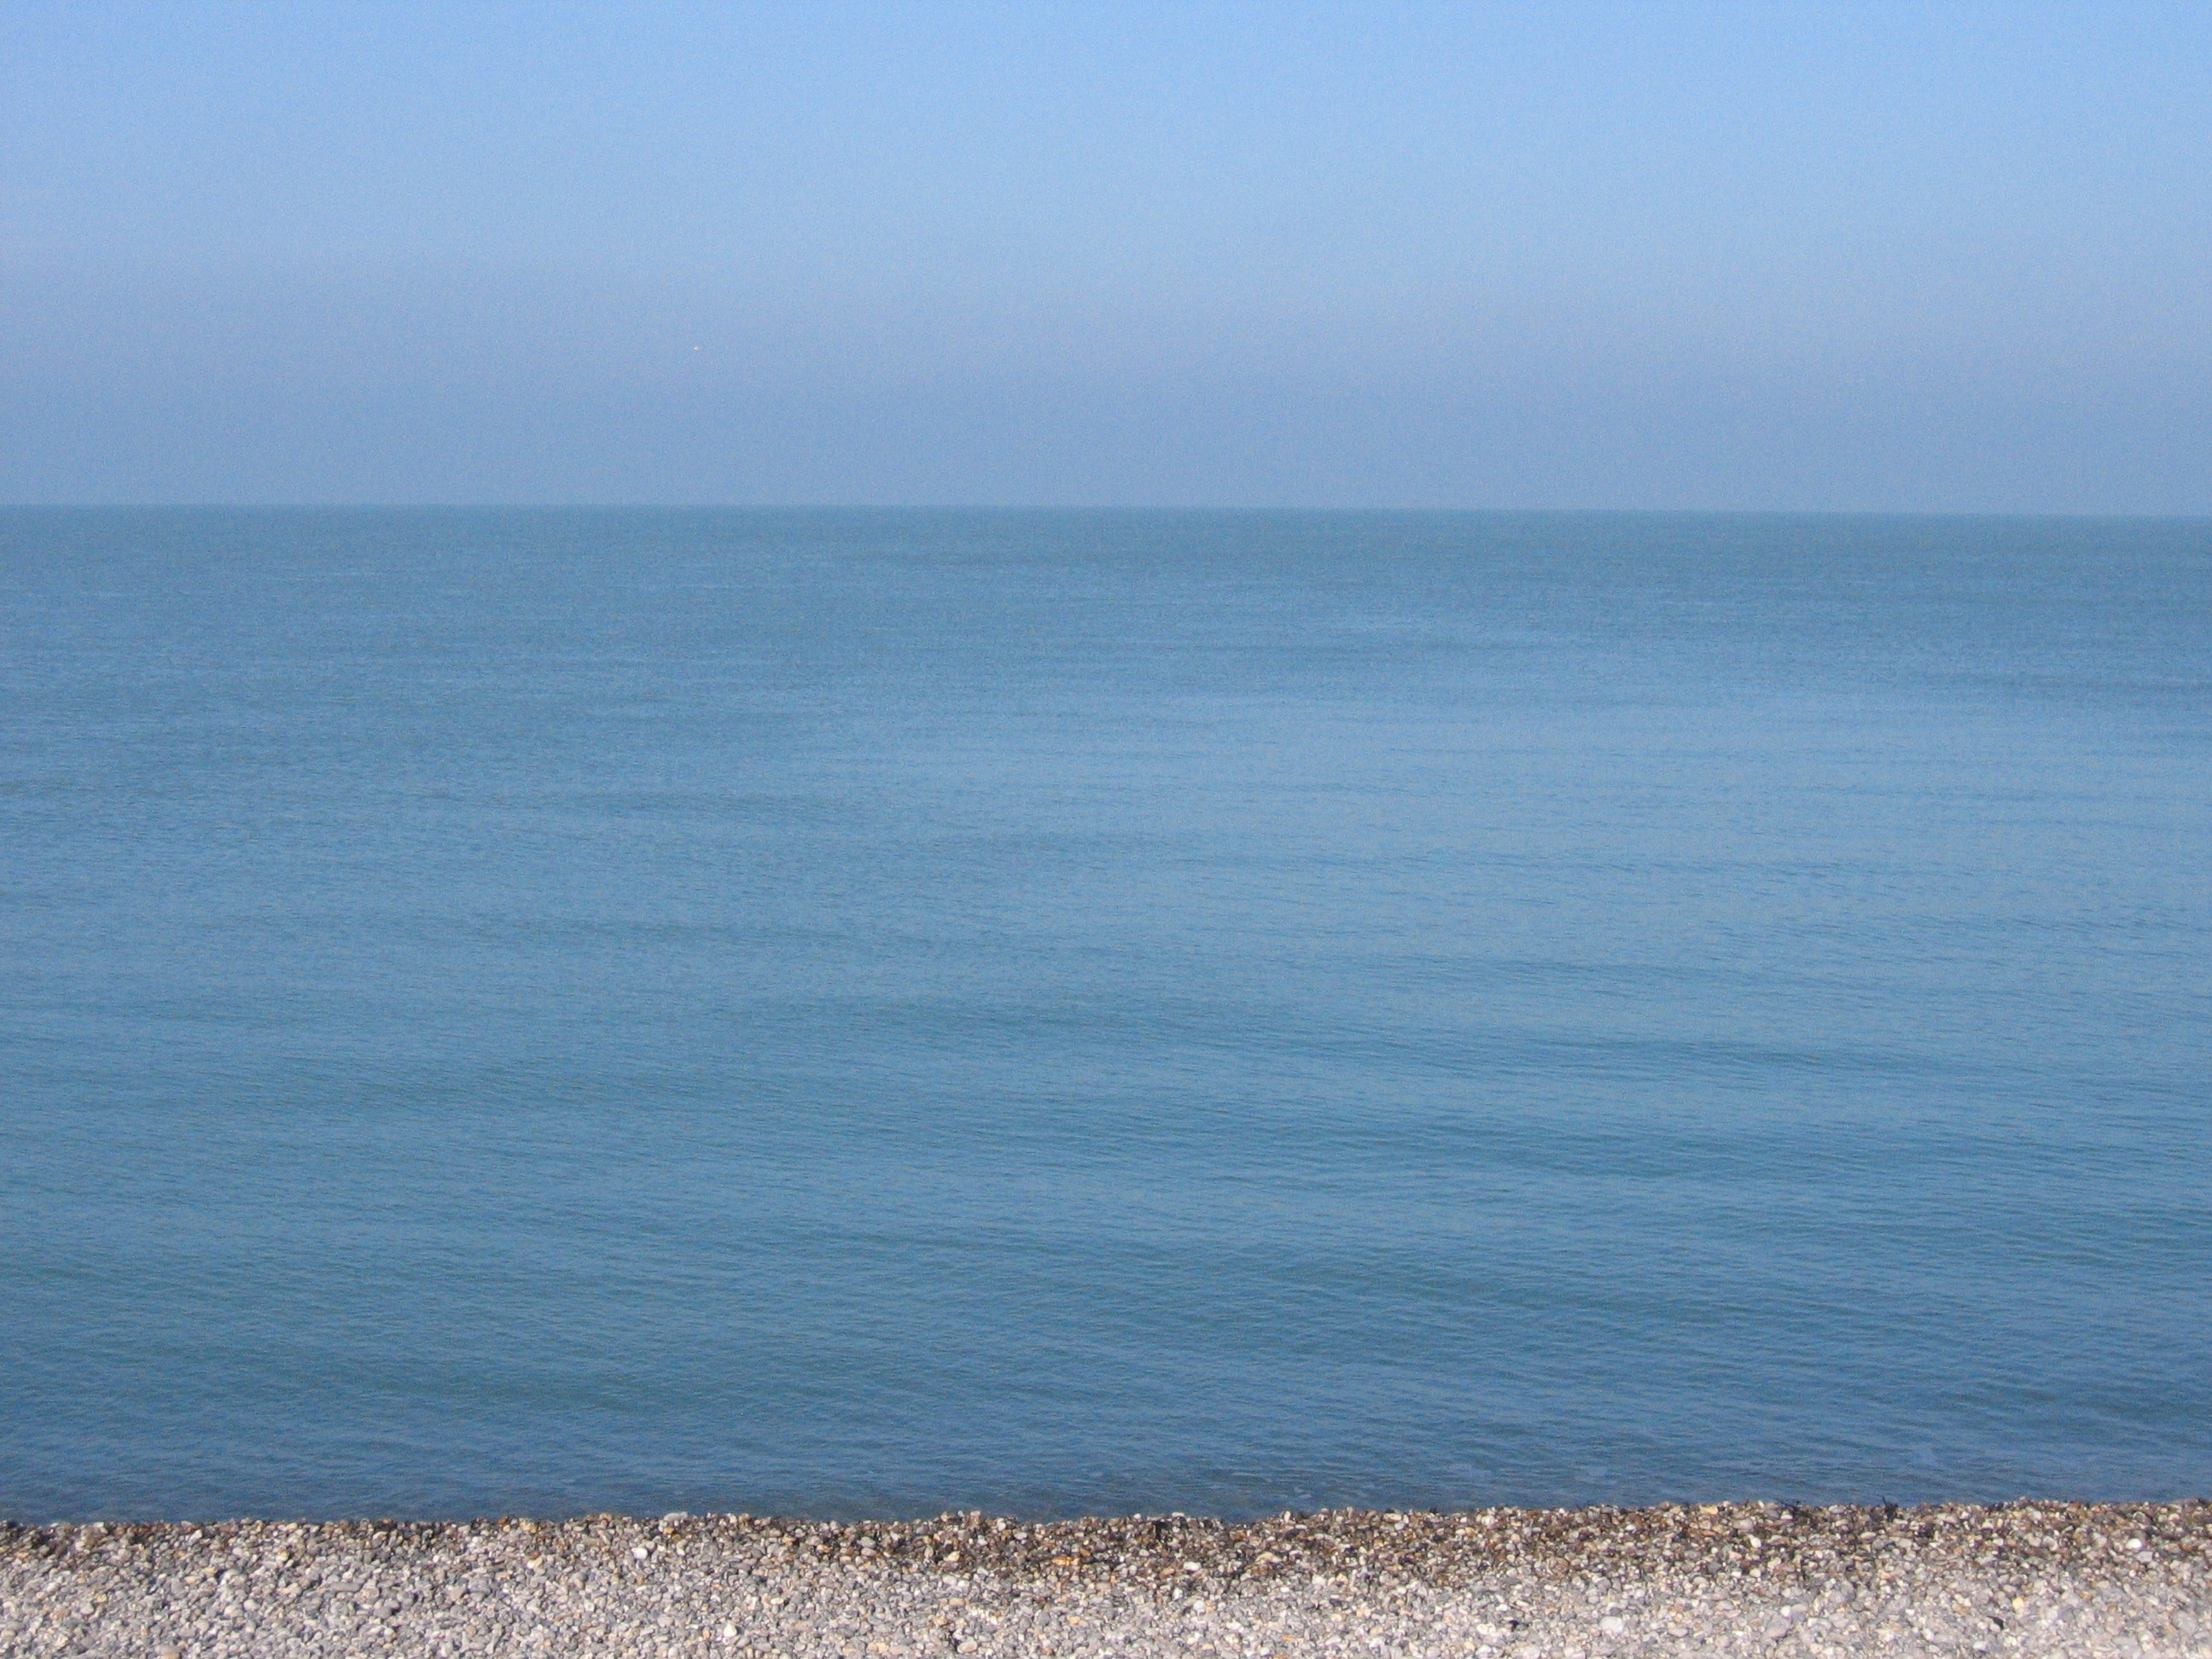 Calm sea morning in Normandy